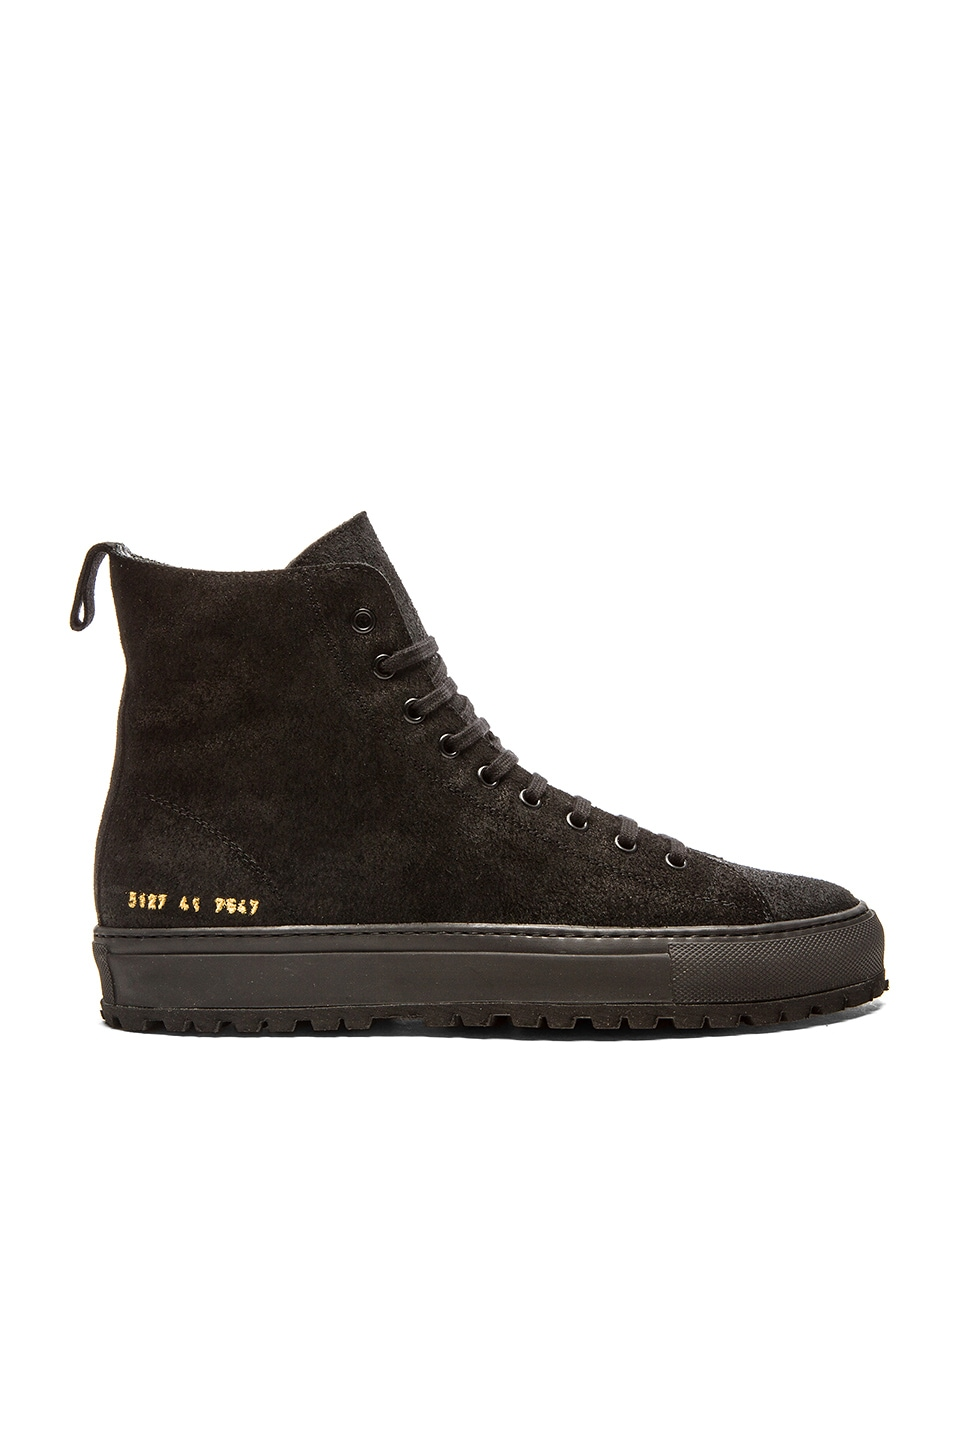 a8bbb9d98e0a Common Projects Tournament High Lug in Black